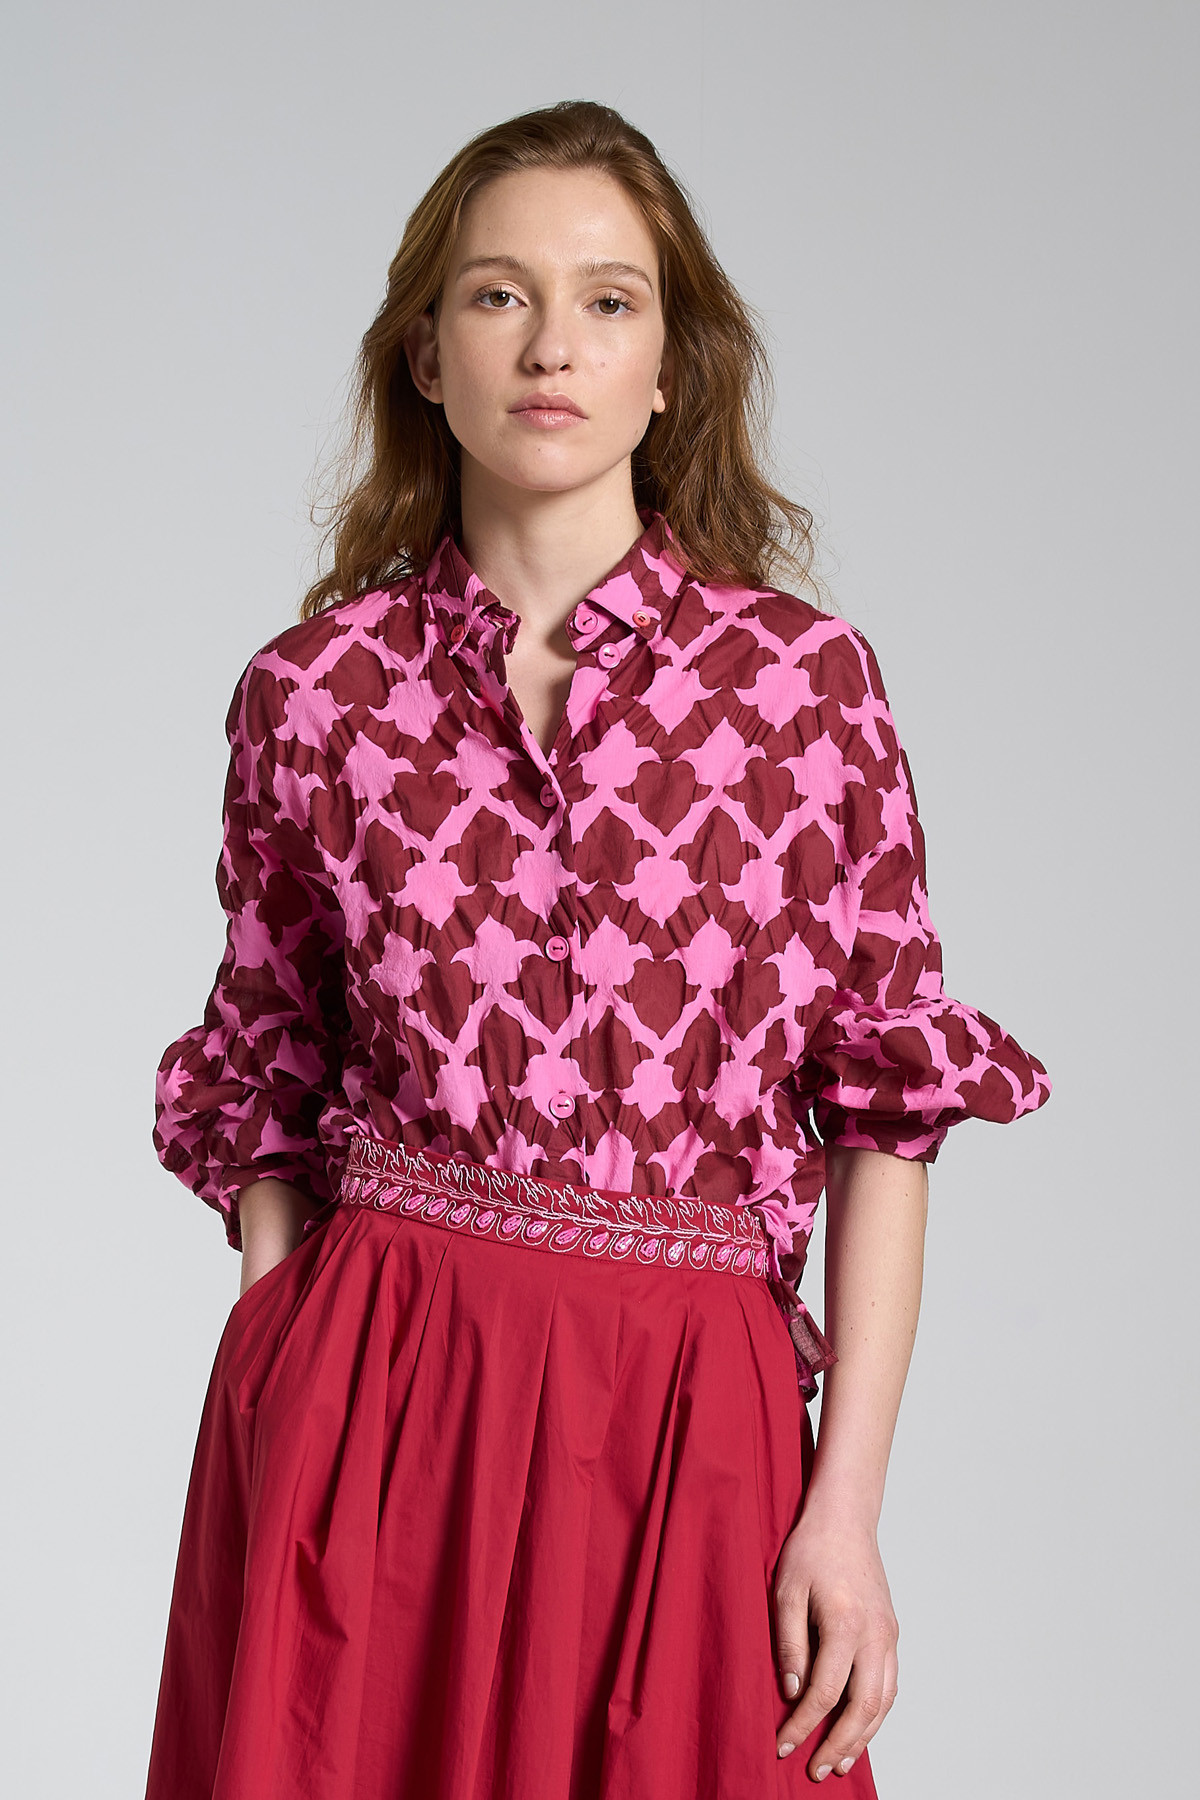 Women's Clothing Shirt Seersucker Ceres in Cotton Balloon Sleeve Pink and Red Maliparmi   Shirts and tops   JM453010139B3220